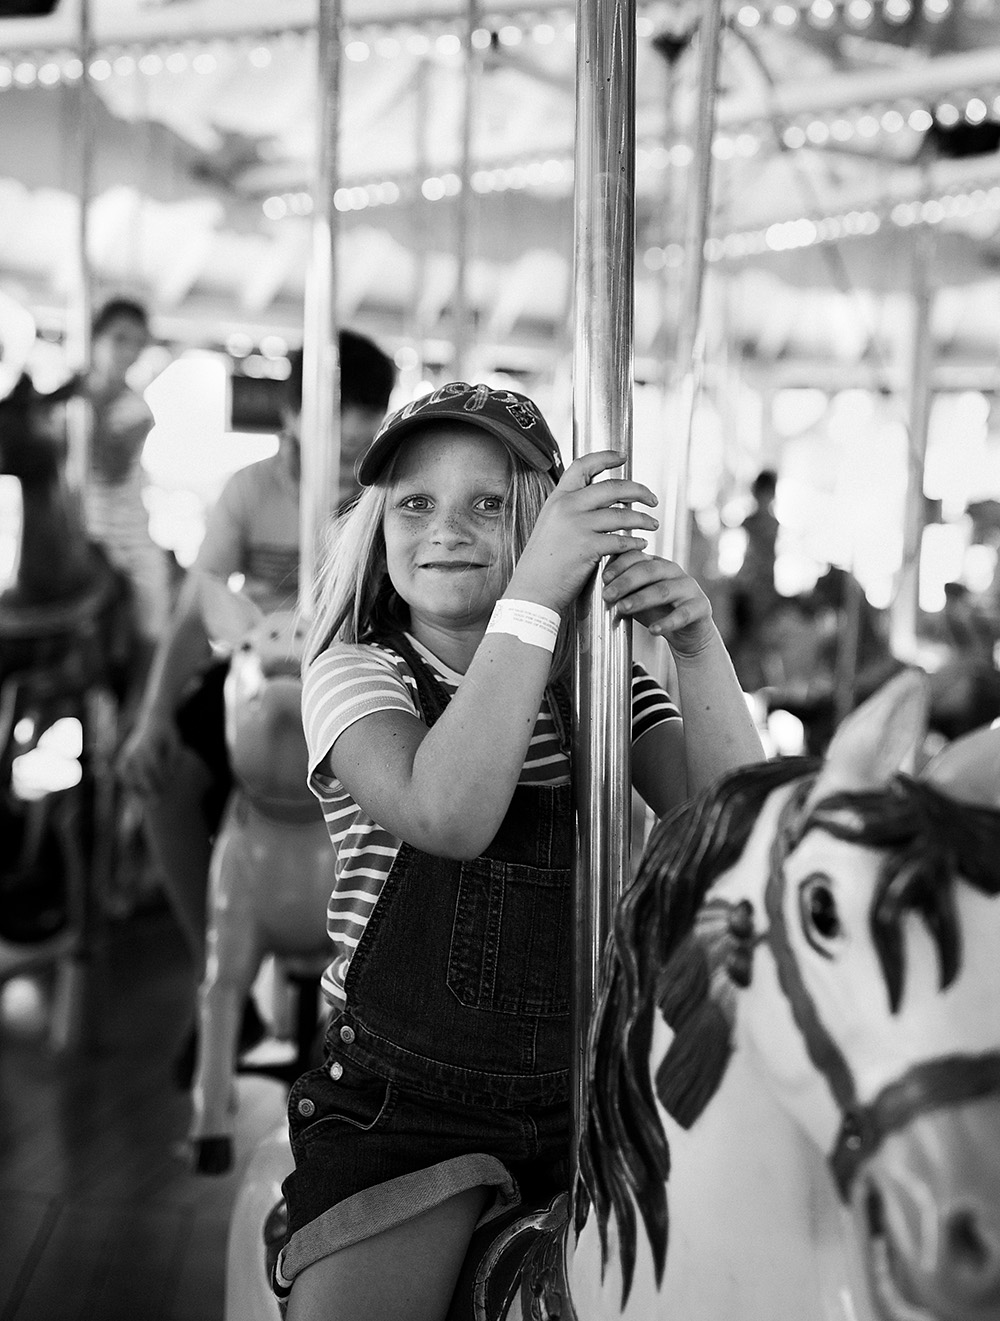 girl on carousel in black and white